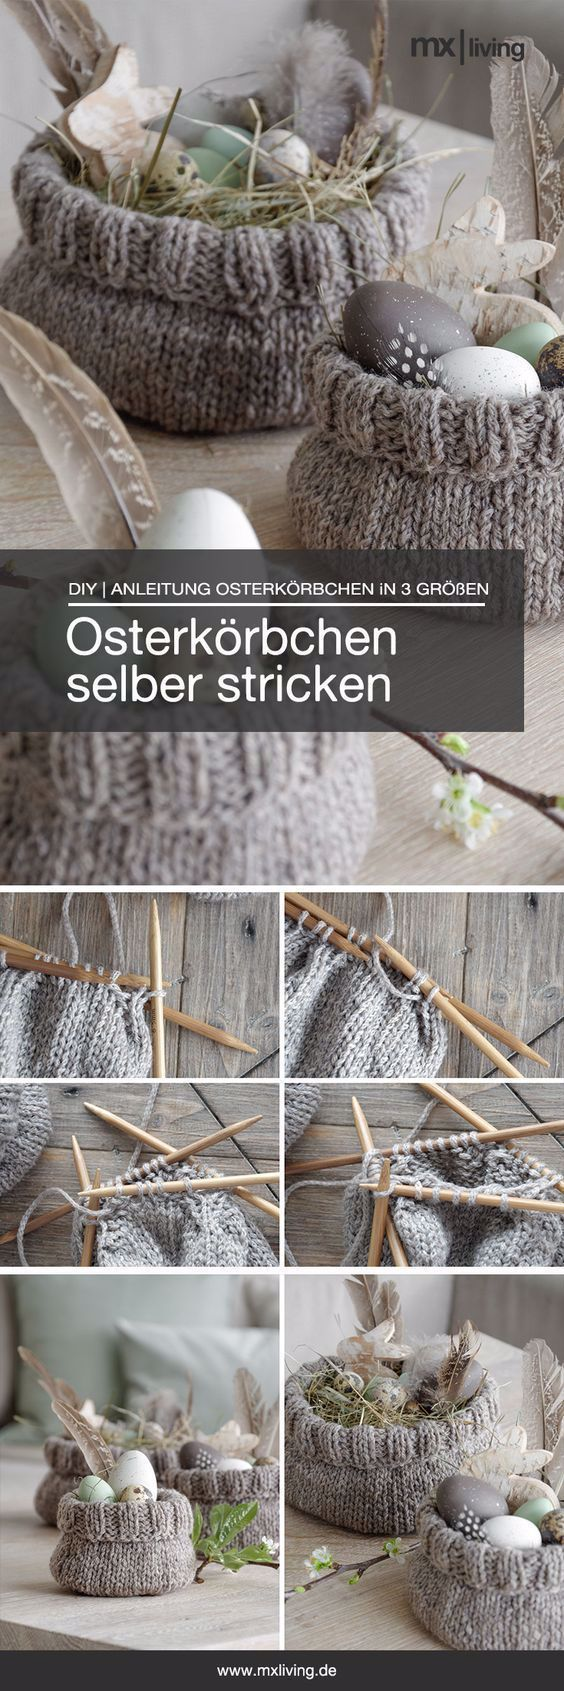 Photo of DIY | Selbst süße Osterkörbe stricken – mxliving, #DIY #mxliving #Osterkörbe…